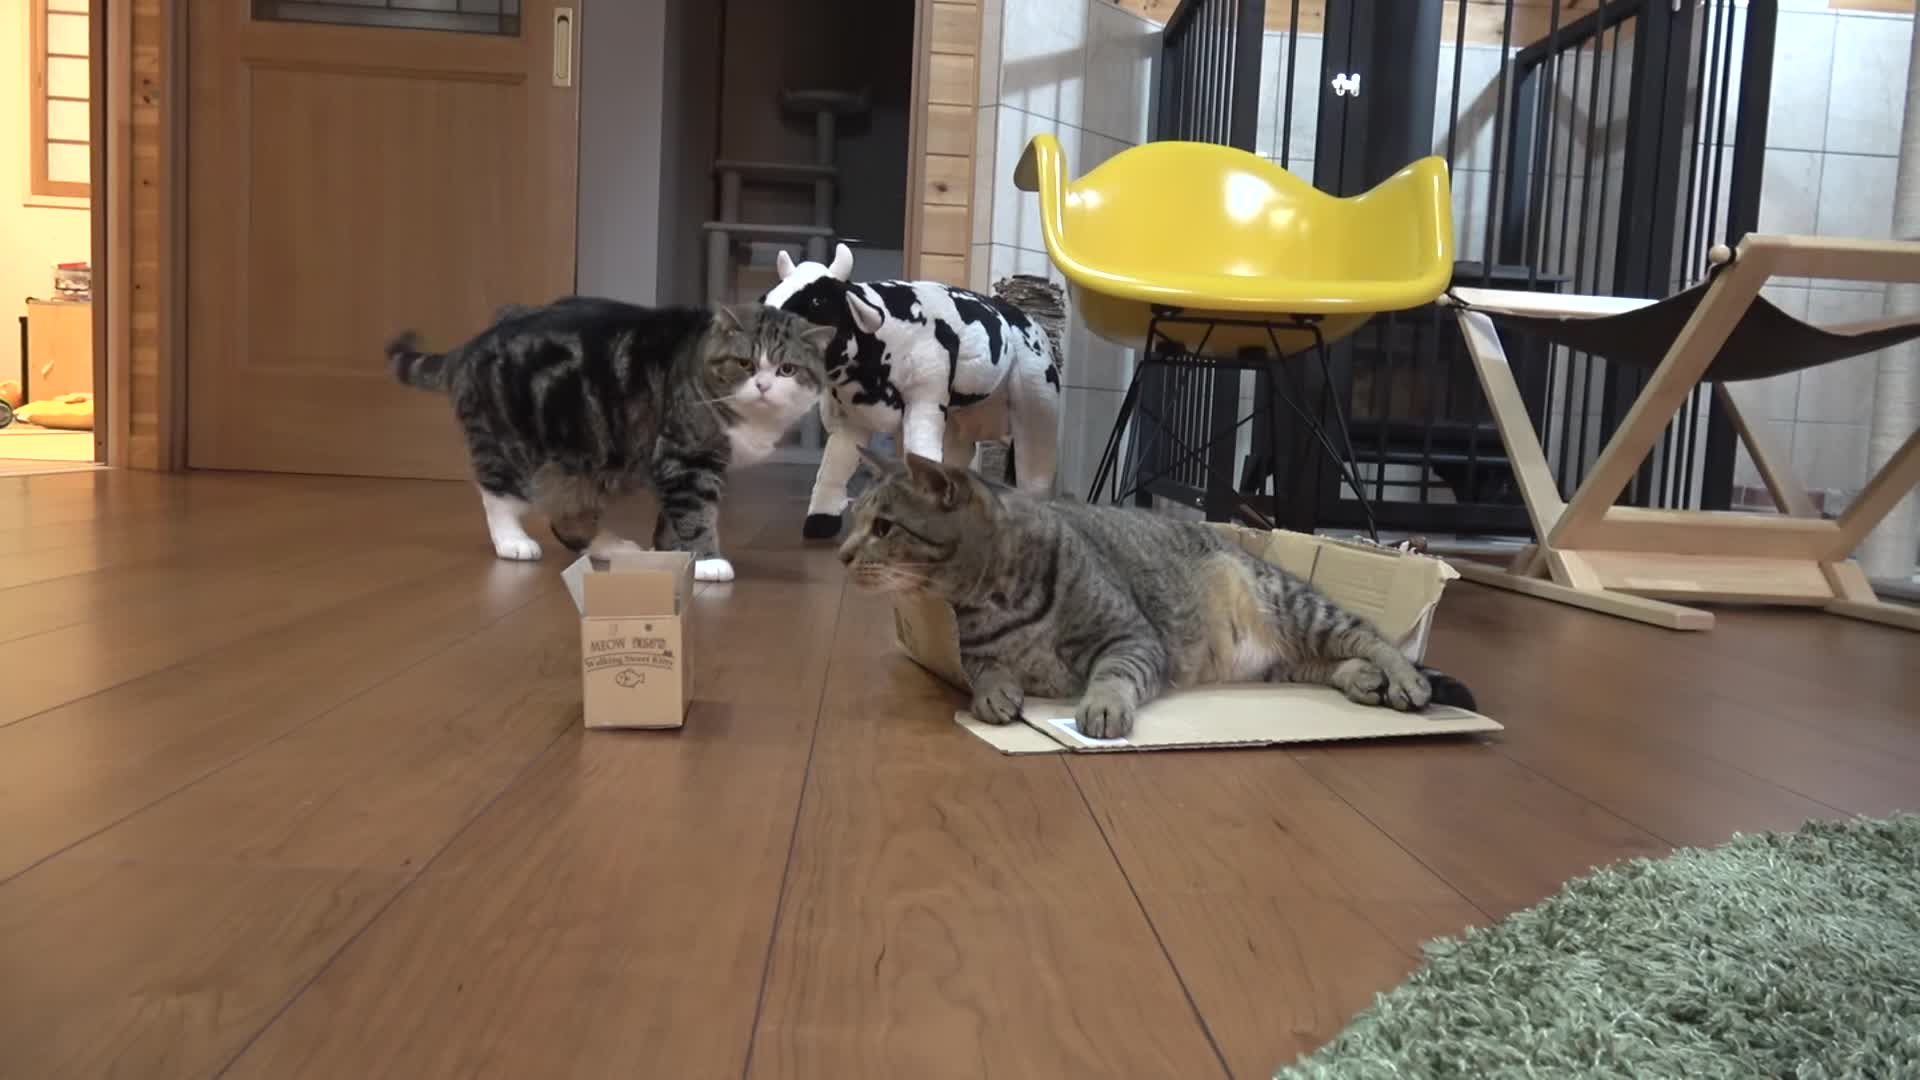 Maru is NOT amused GIFs